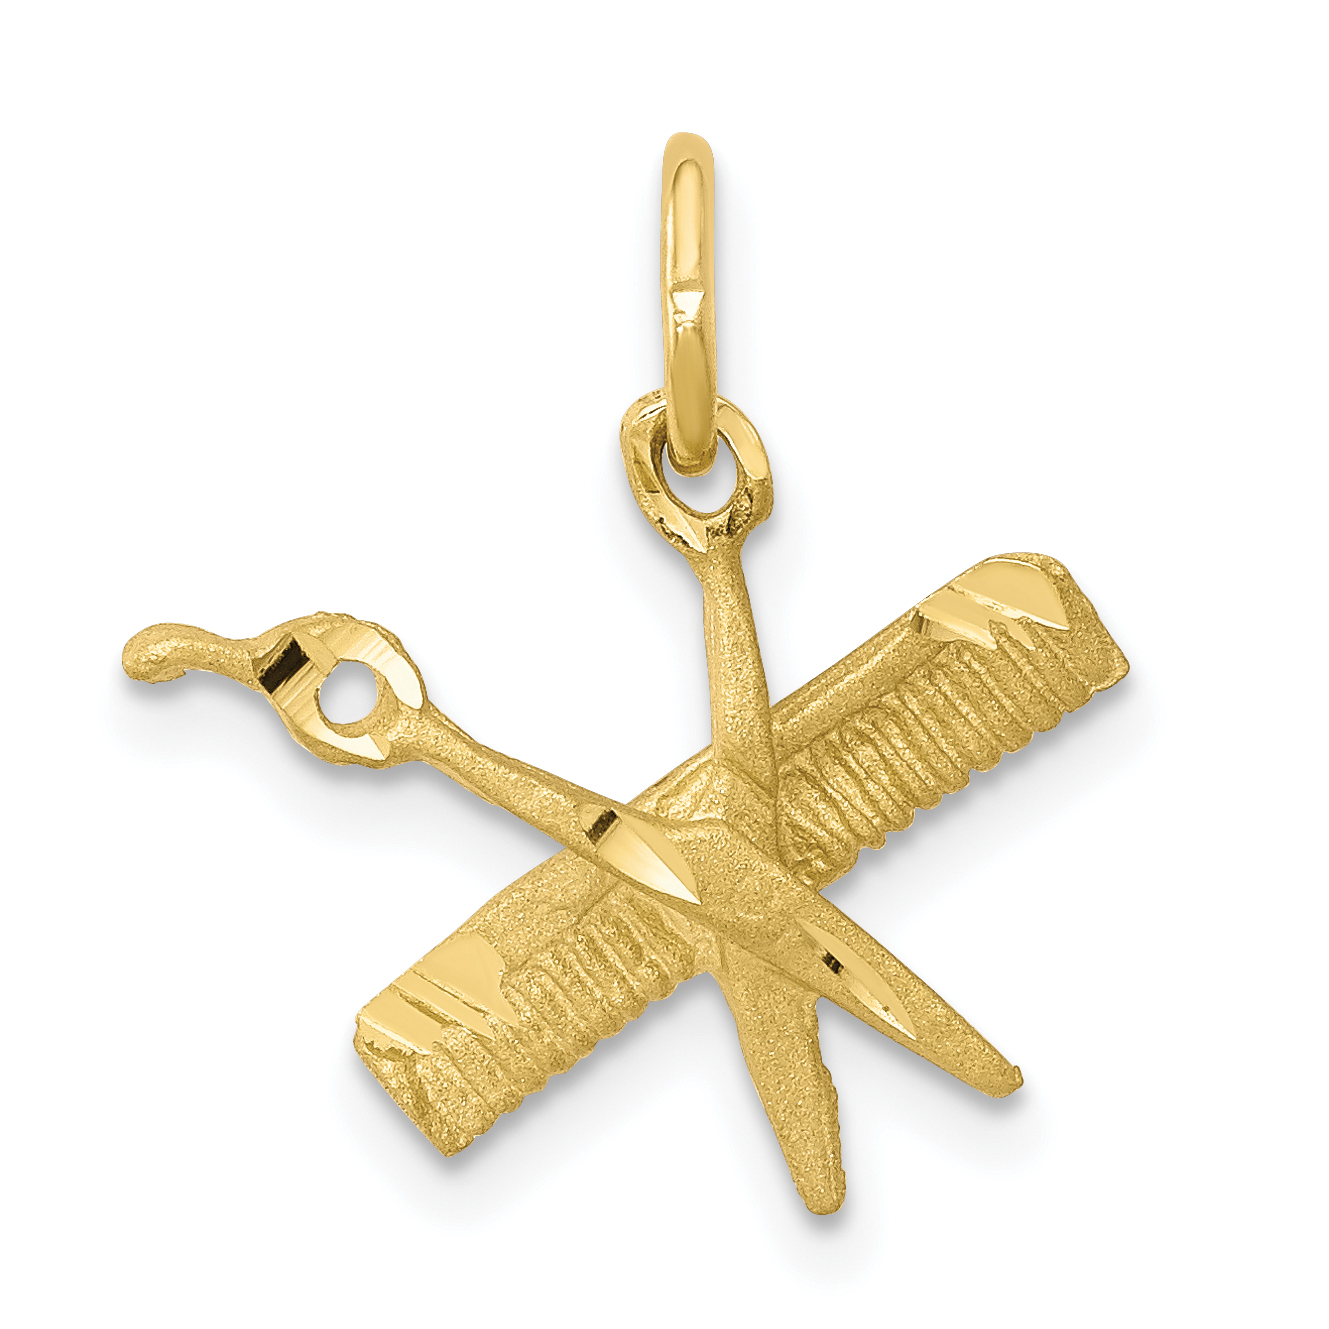 10K Yellow Gold COMB & SCISSORS CHARM - image 2 of 2